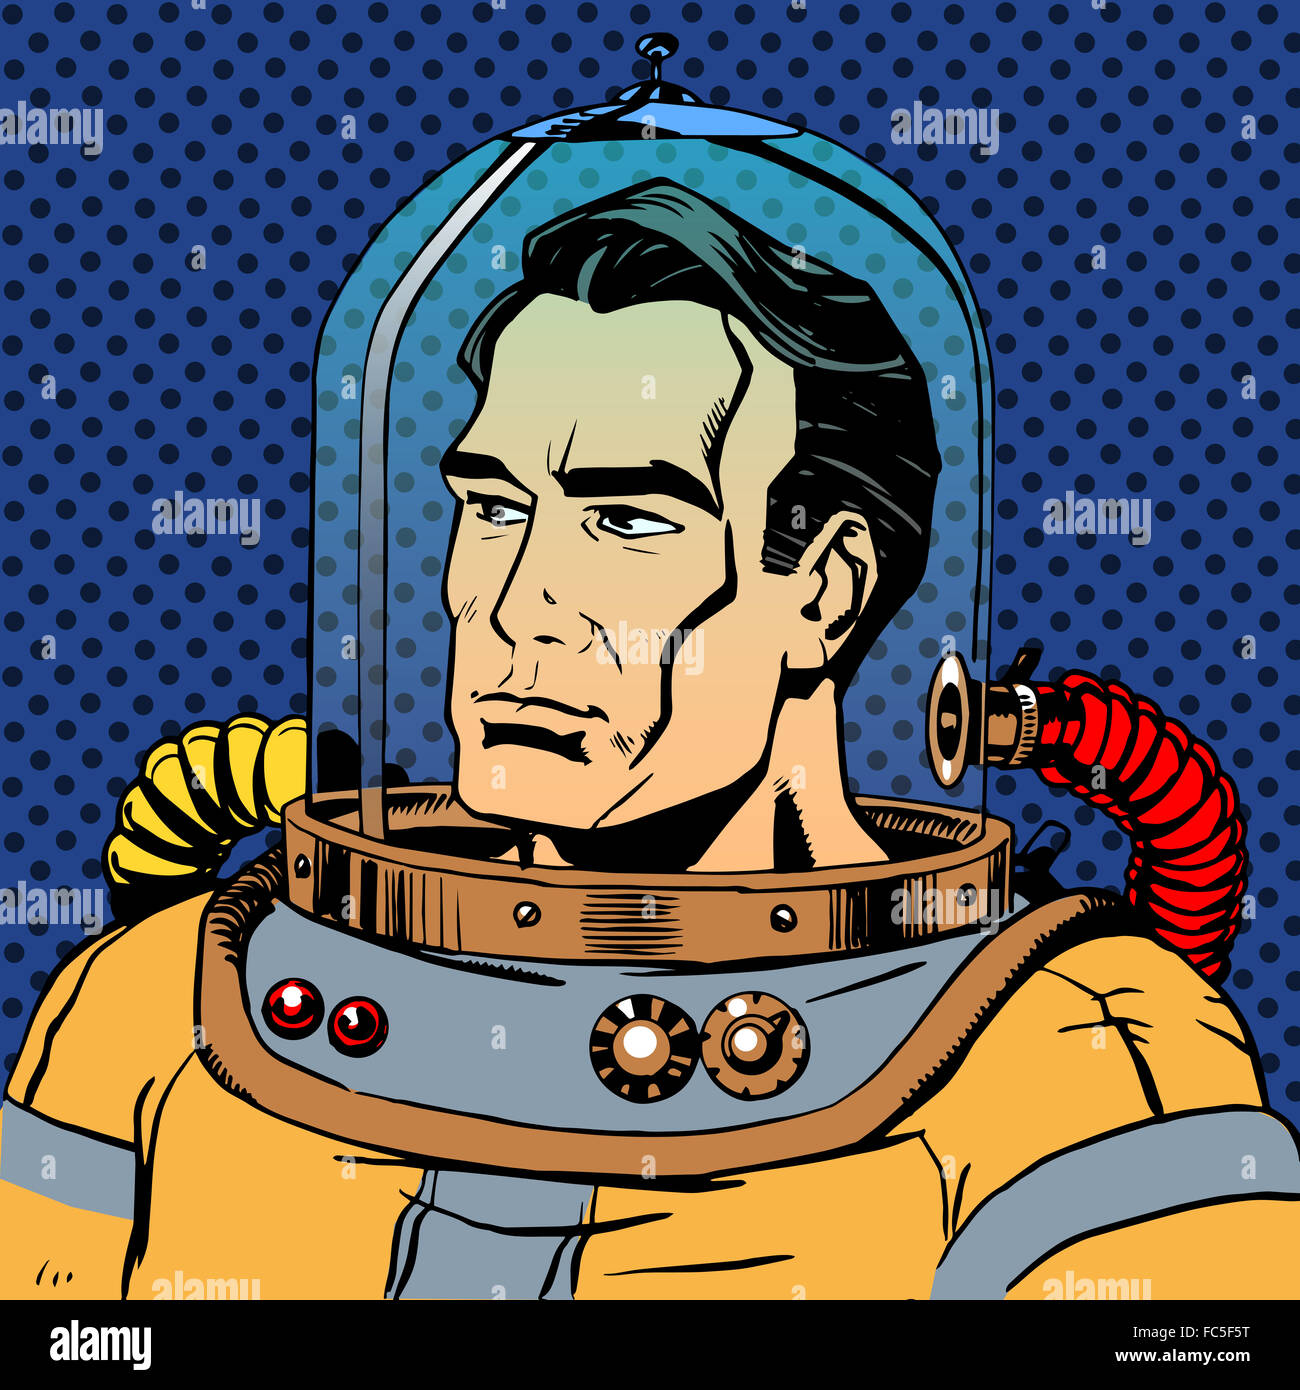 Manly man astronaut in a spacesuit - Stock Image